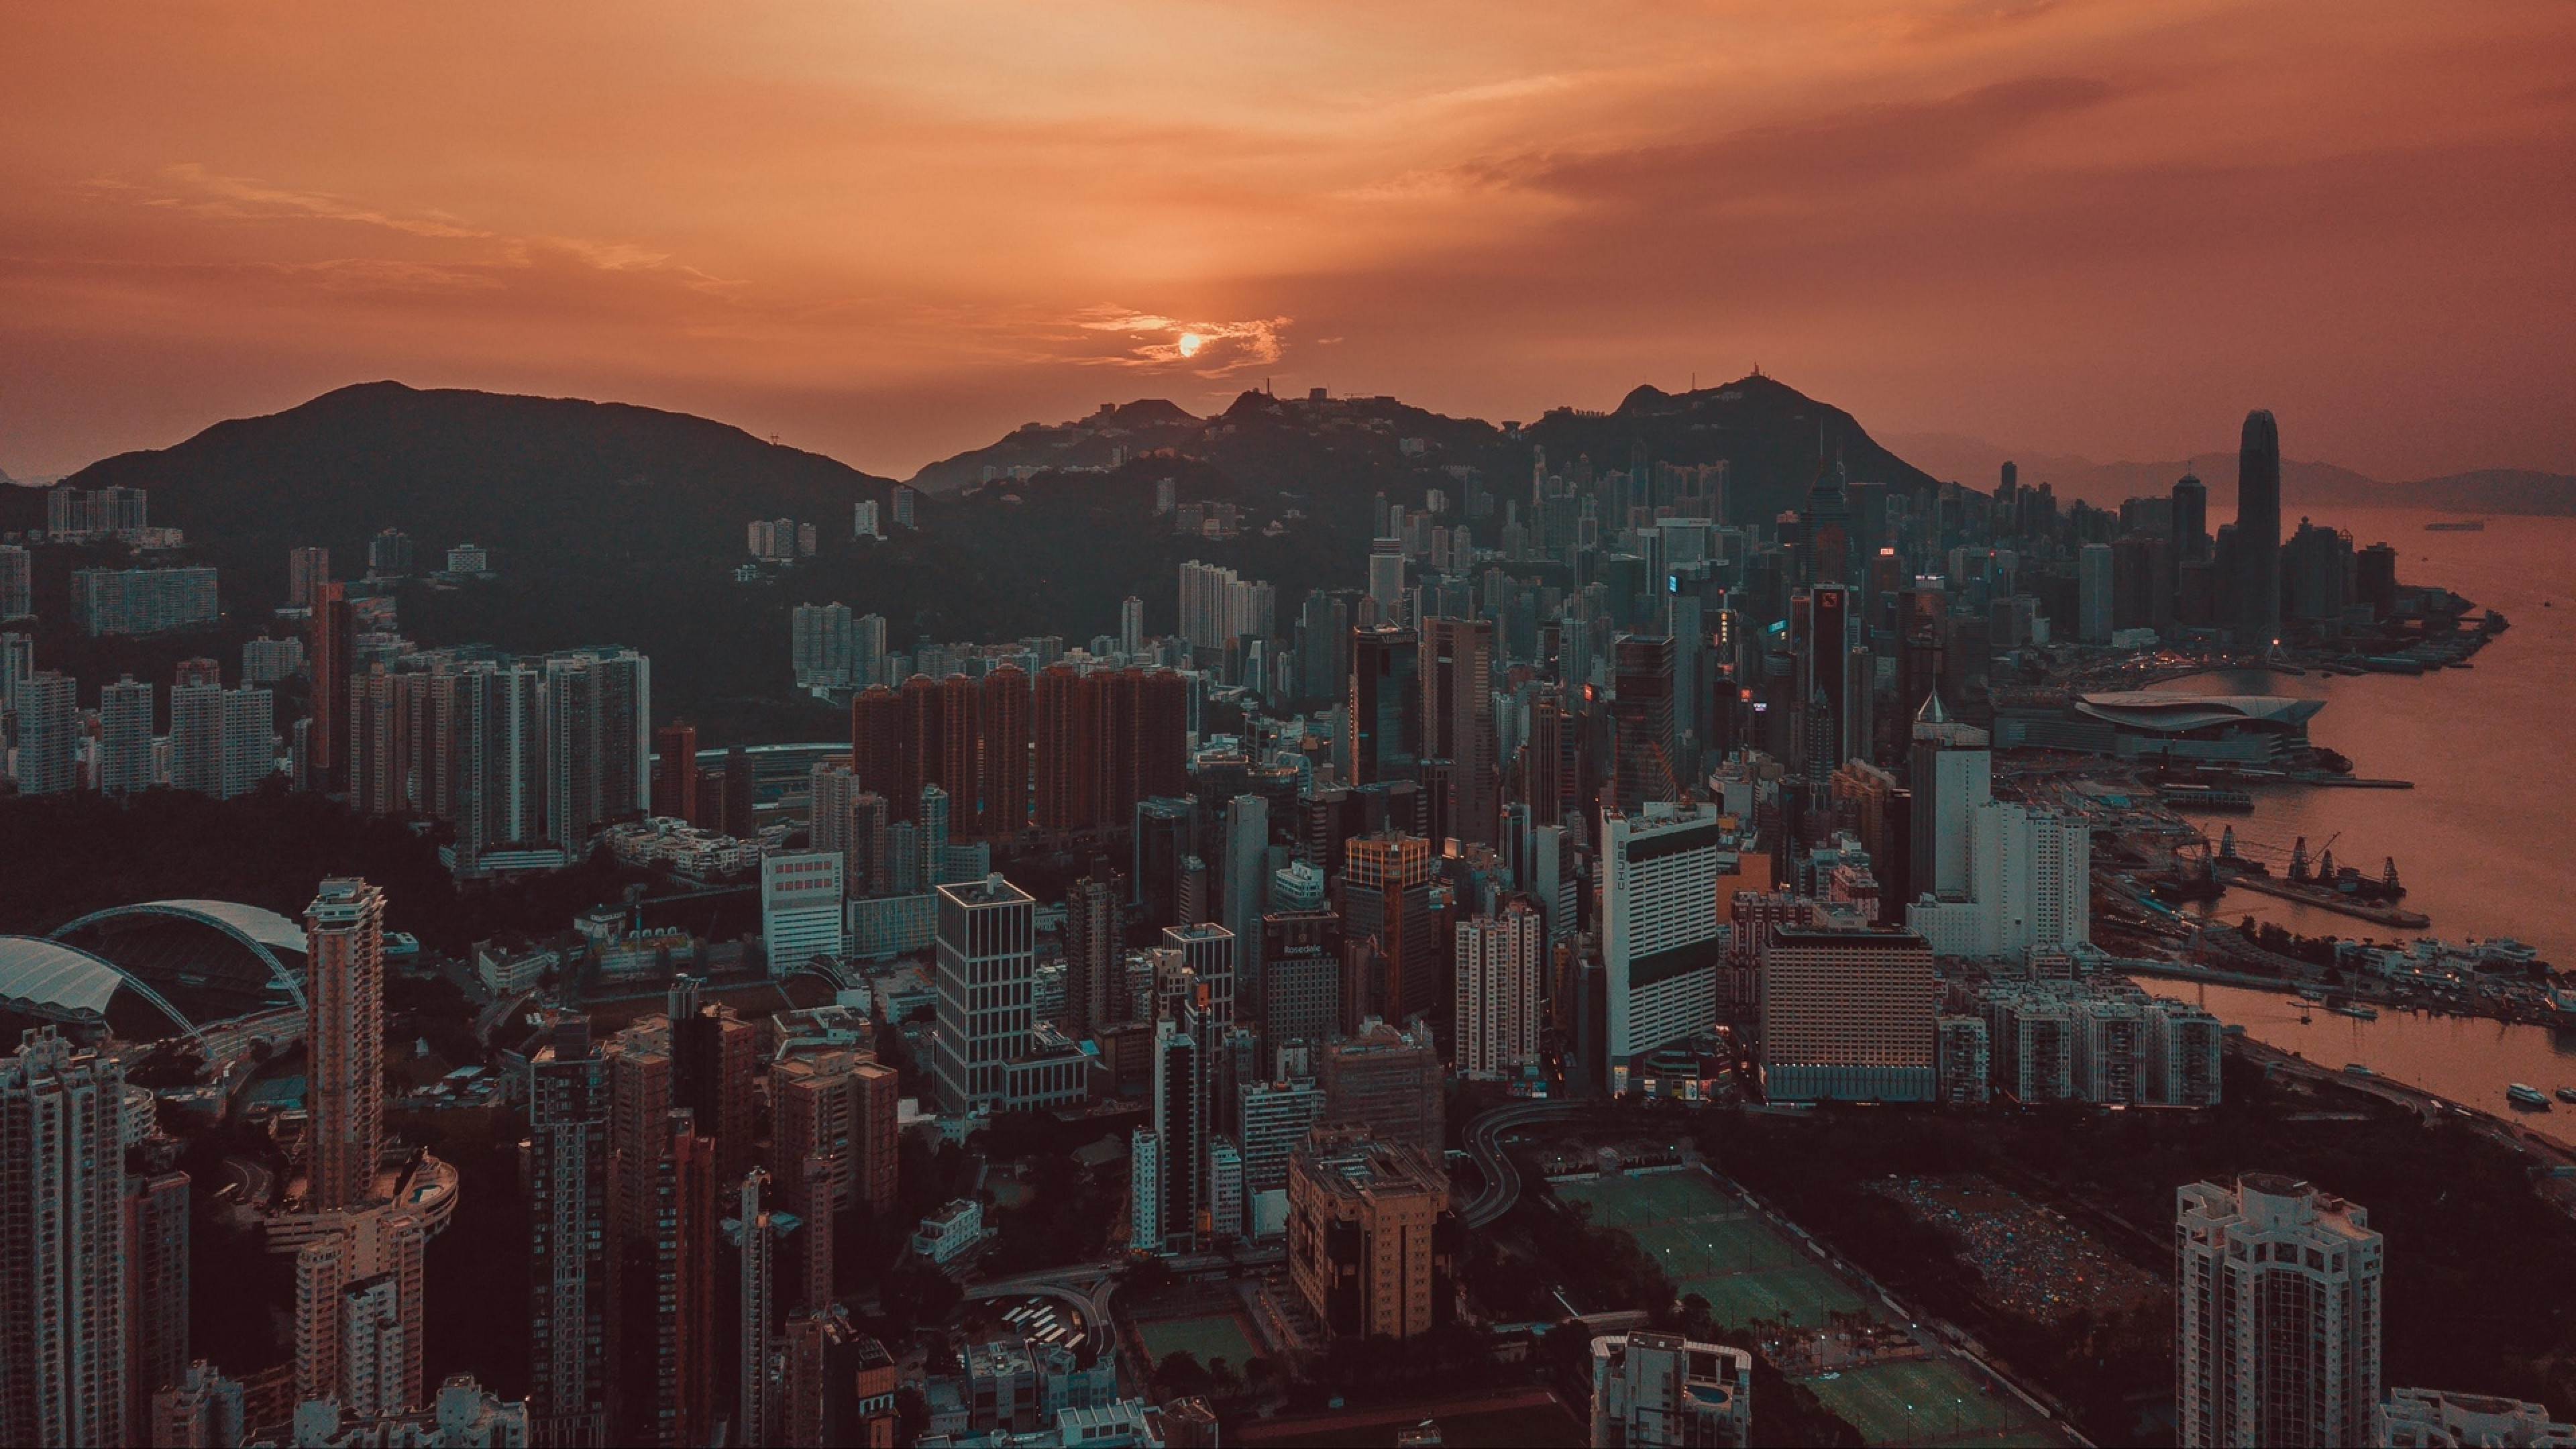 Hong Kong Sunset Hd Wallpaper 4k Ultra Hd Hd Wallpaper